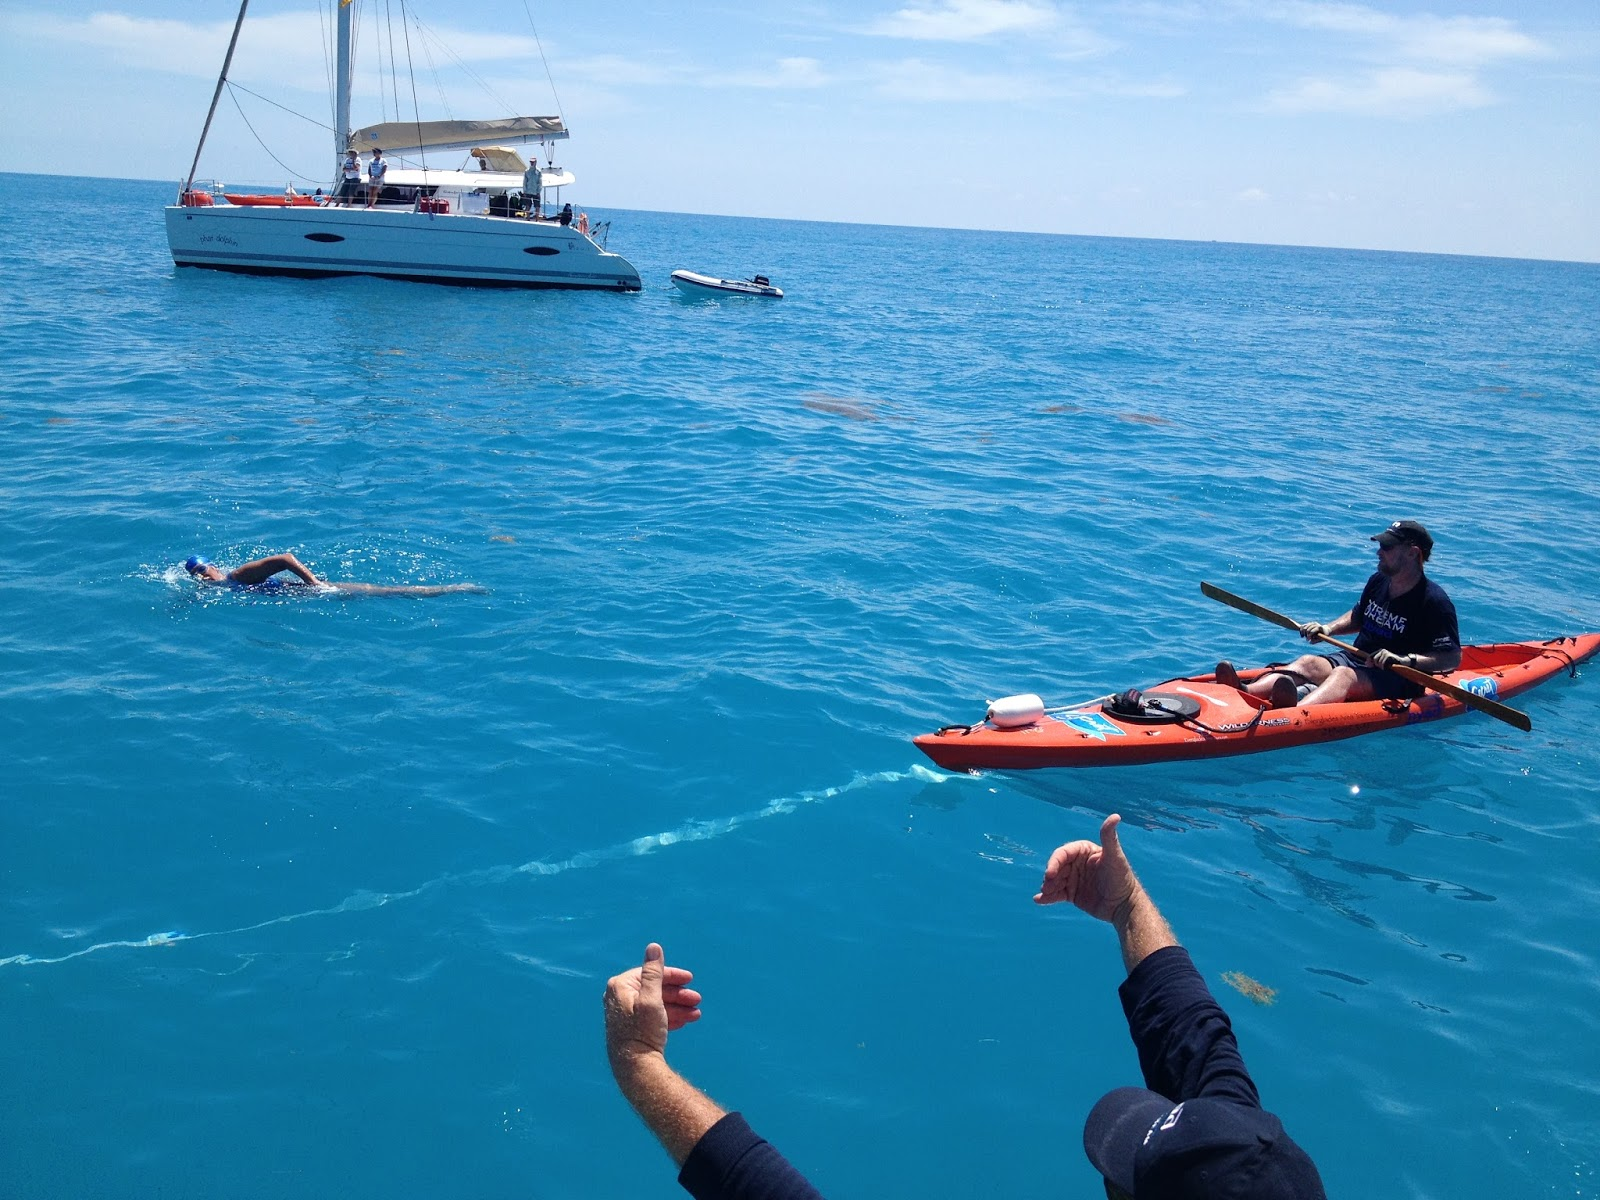 Diana Nyad swims a few miles off Key West. photo credit: Dawn Blomgren